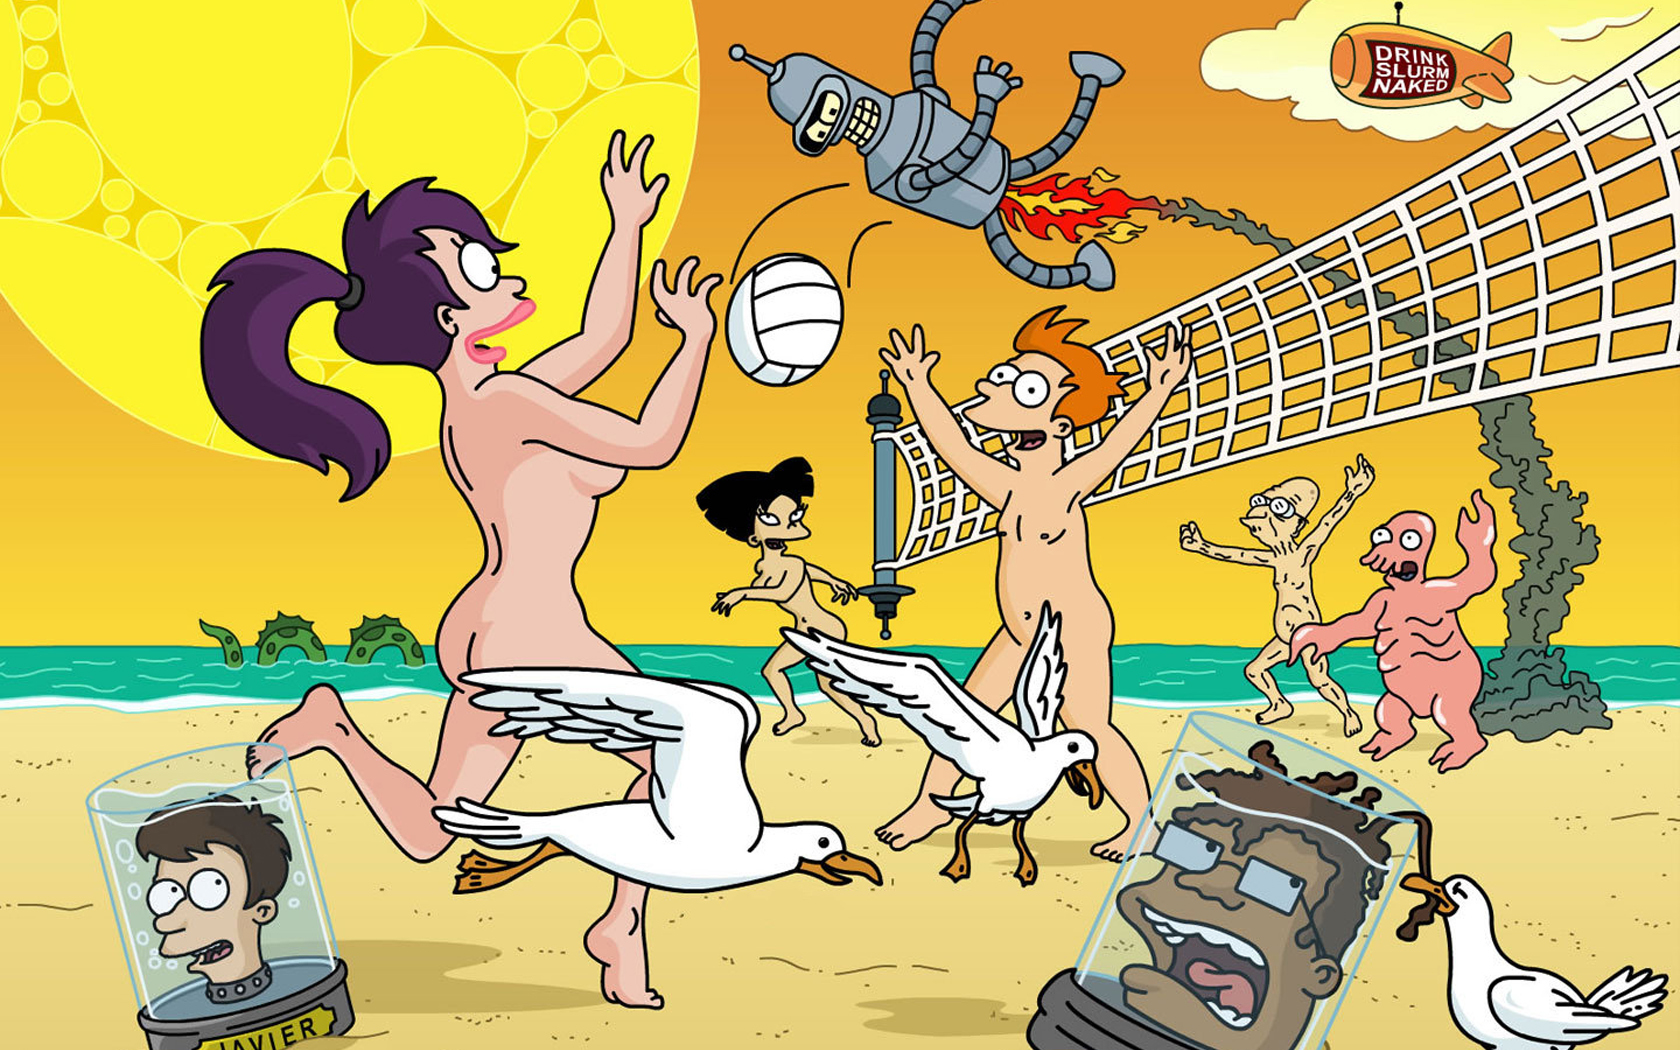 Futurama Bender turanga leela HD Wallpaper